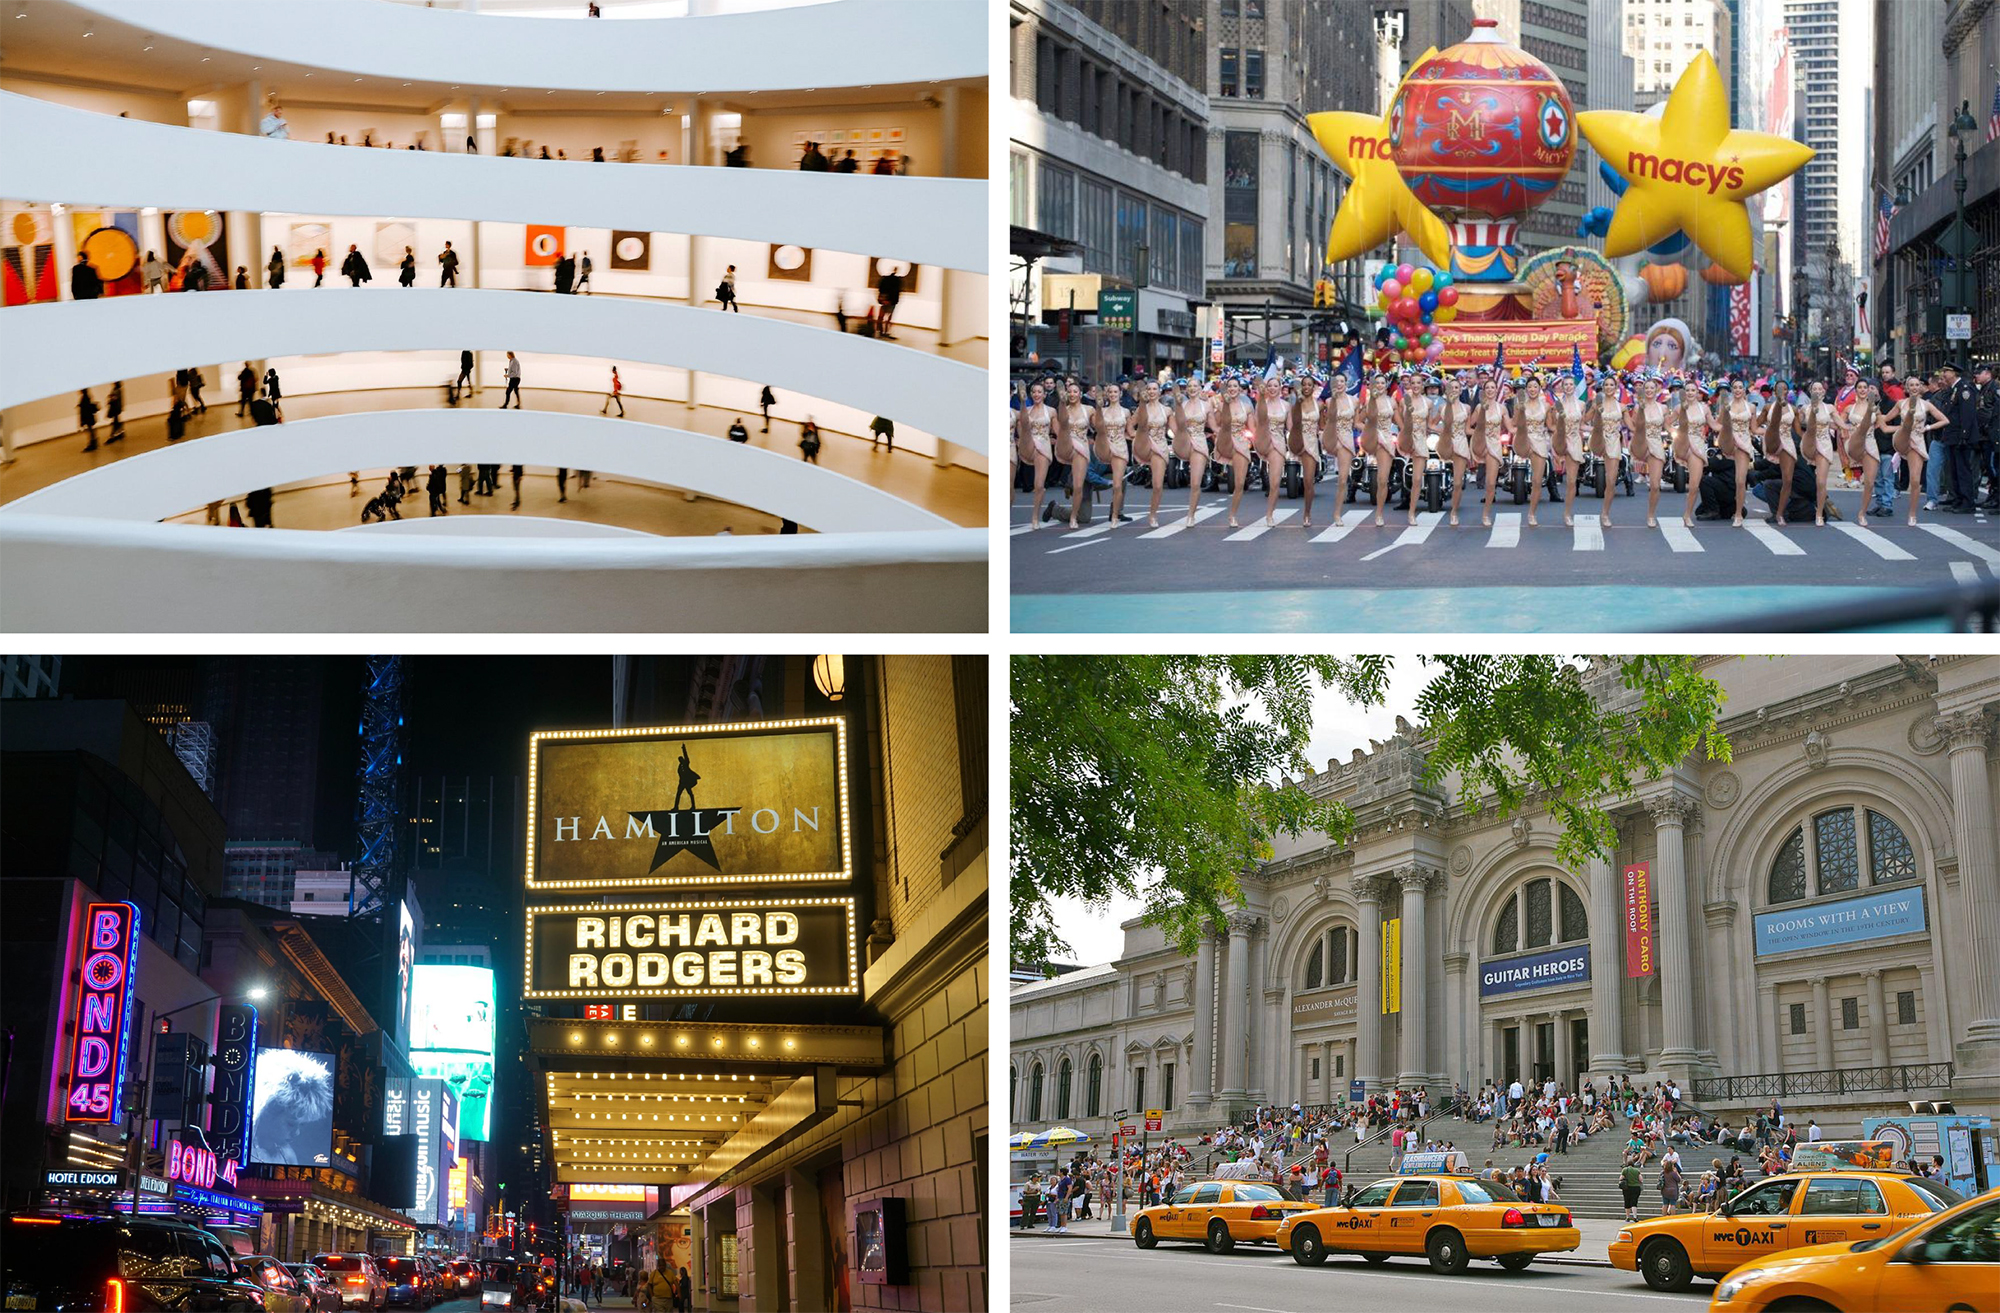 NYC museums, events, performances: What's reopening and what's